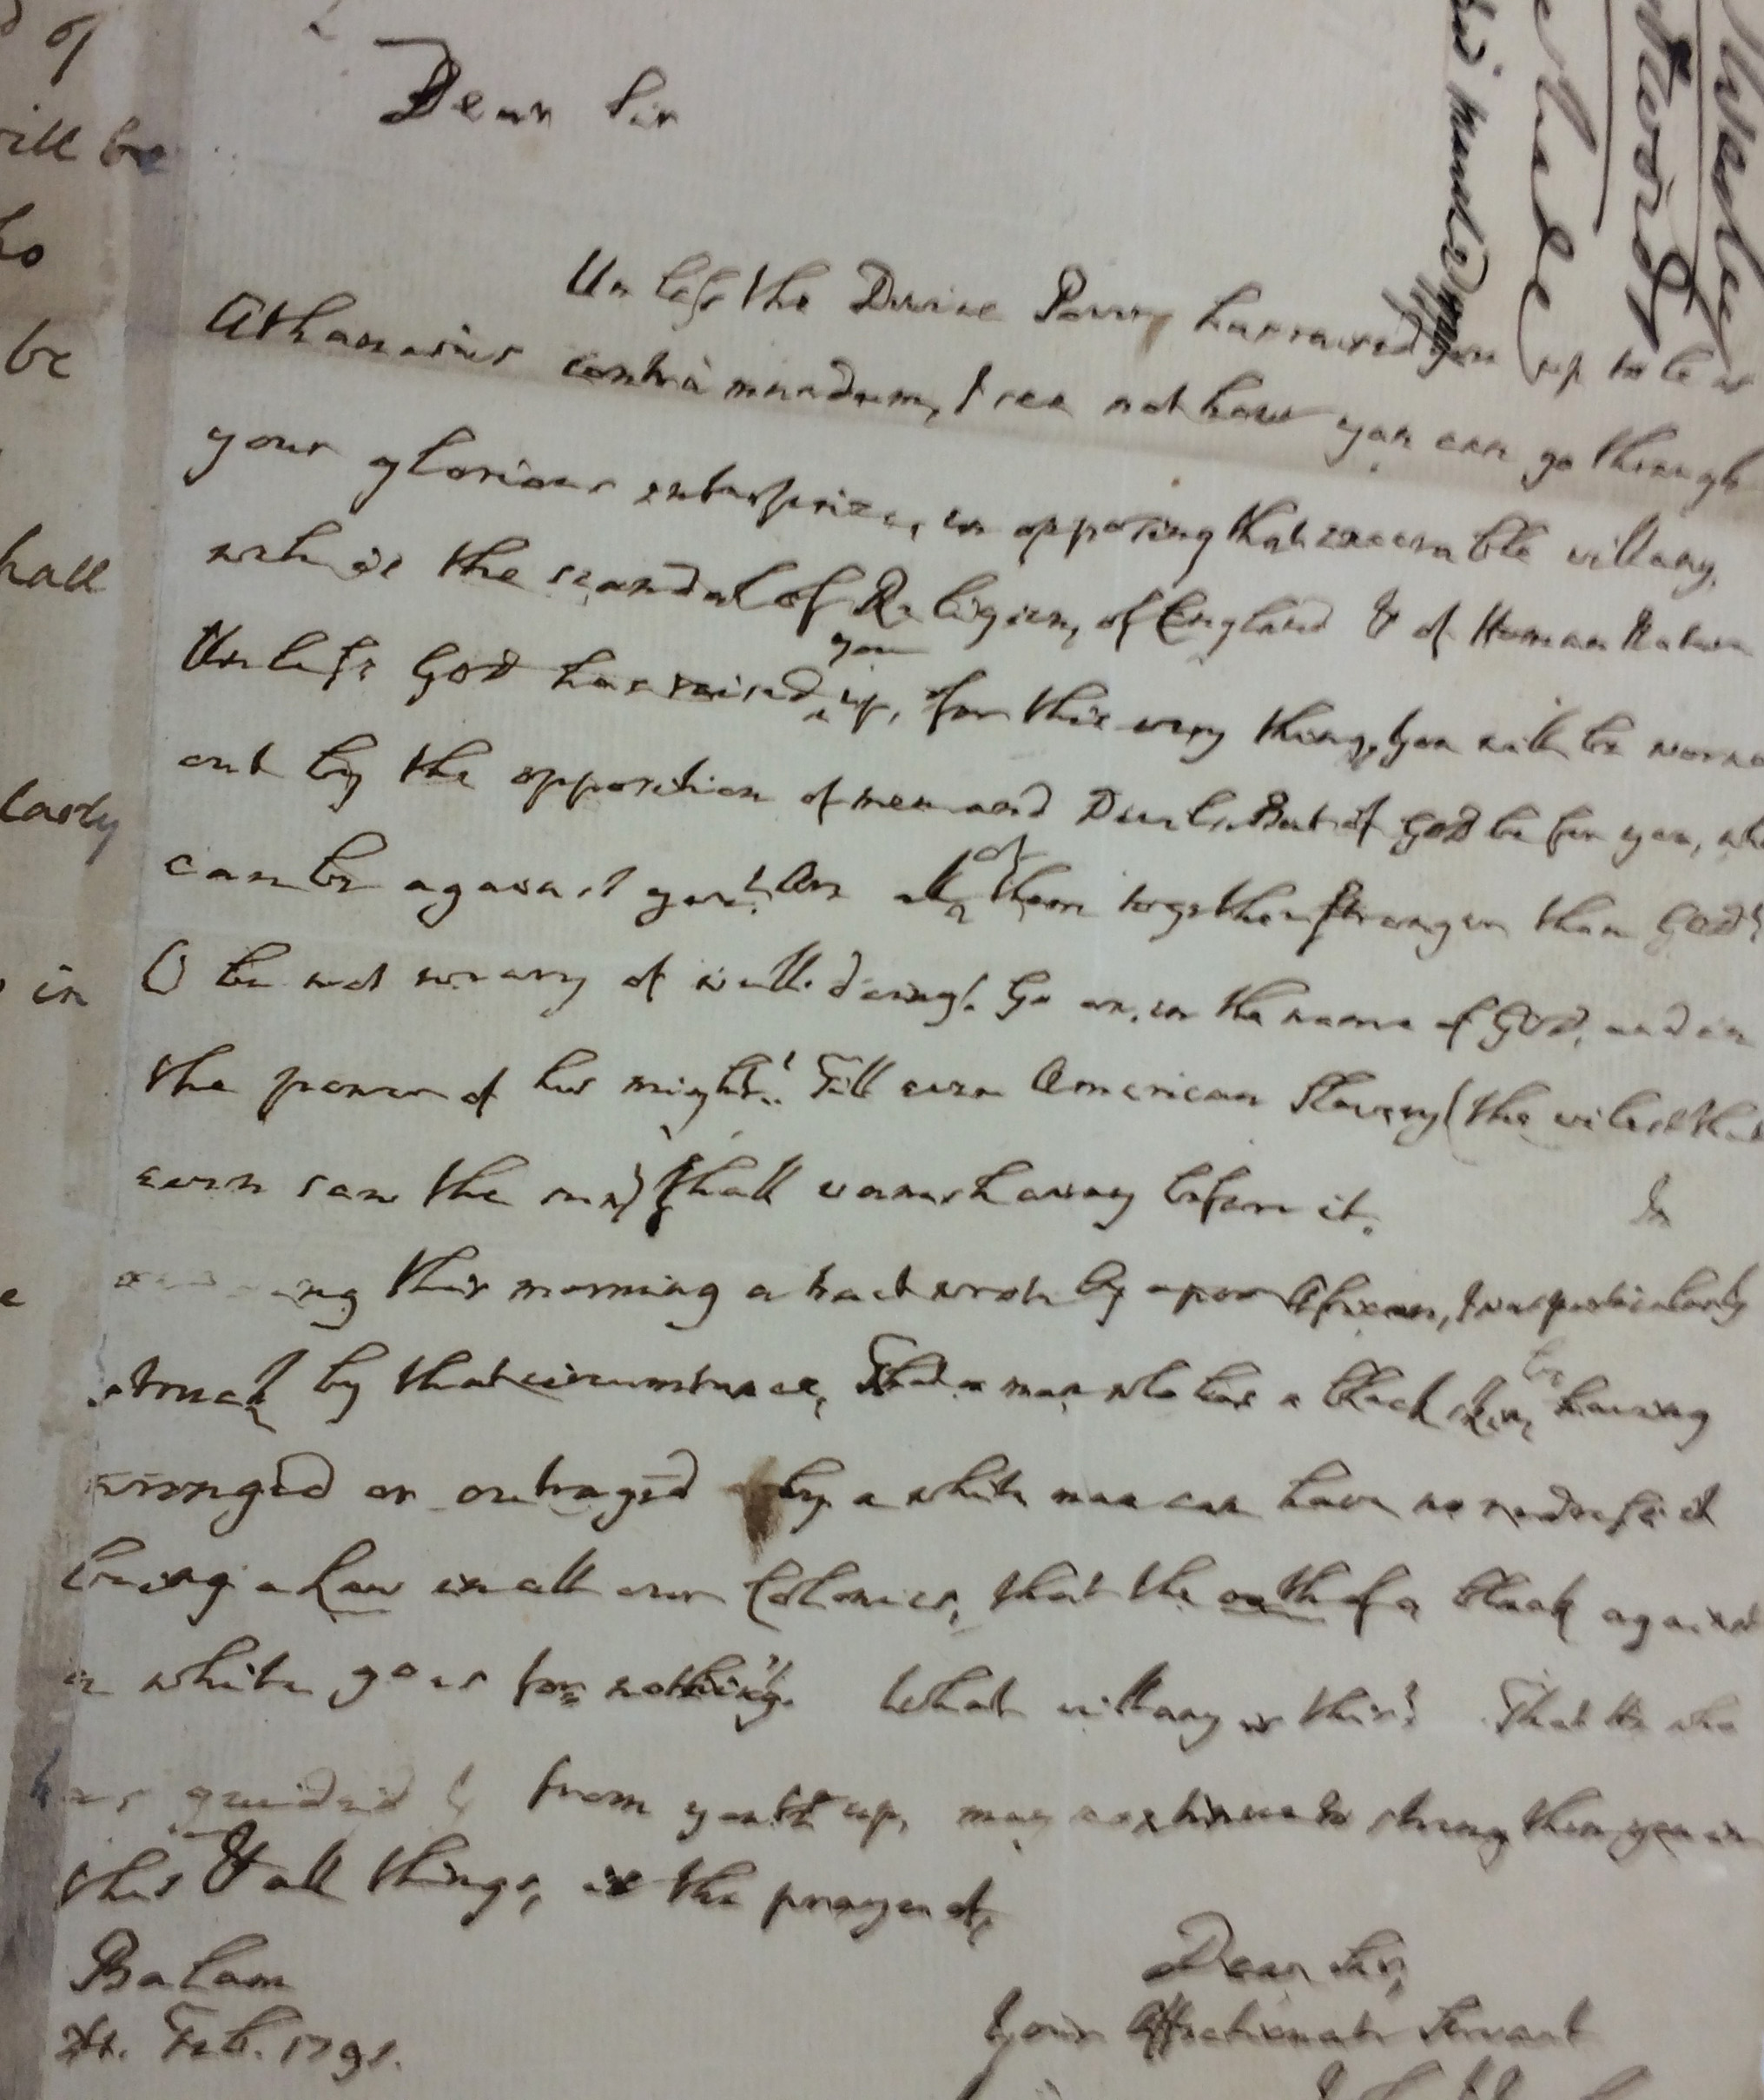 The United Methodist Commission on Archives and History shares its vaults with Drew University, which has John Wesley's last letter as part of its collection. Photo by Fran Walsh, United Methodist Communications